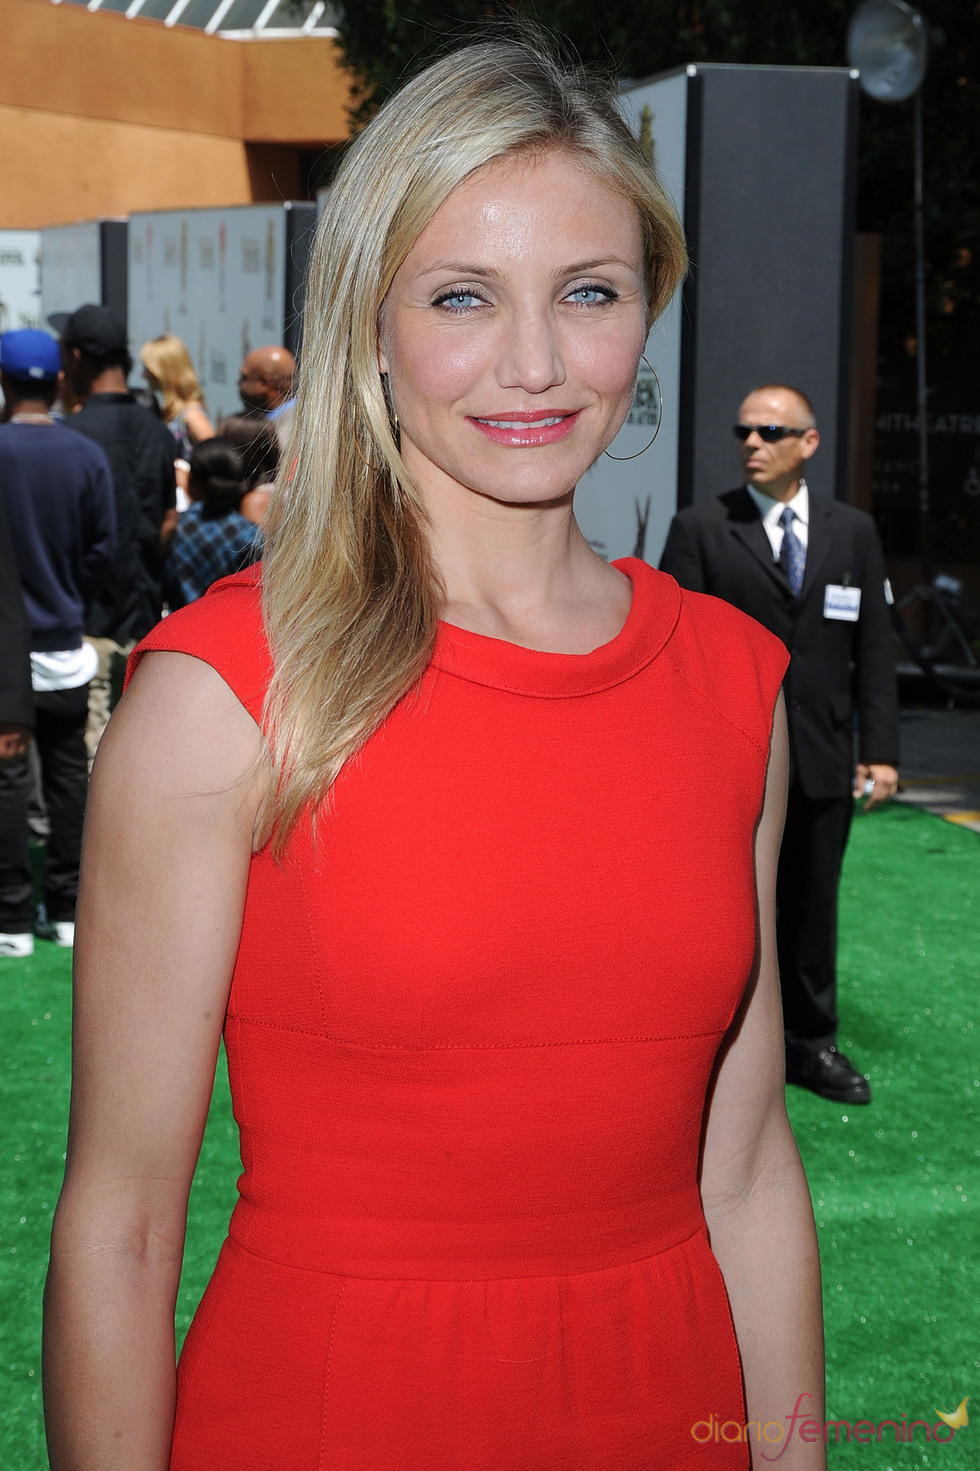 Cameron Diaz, radiante en la premiere de 'Shrek Forever After'